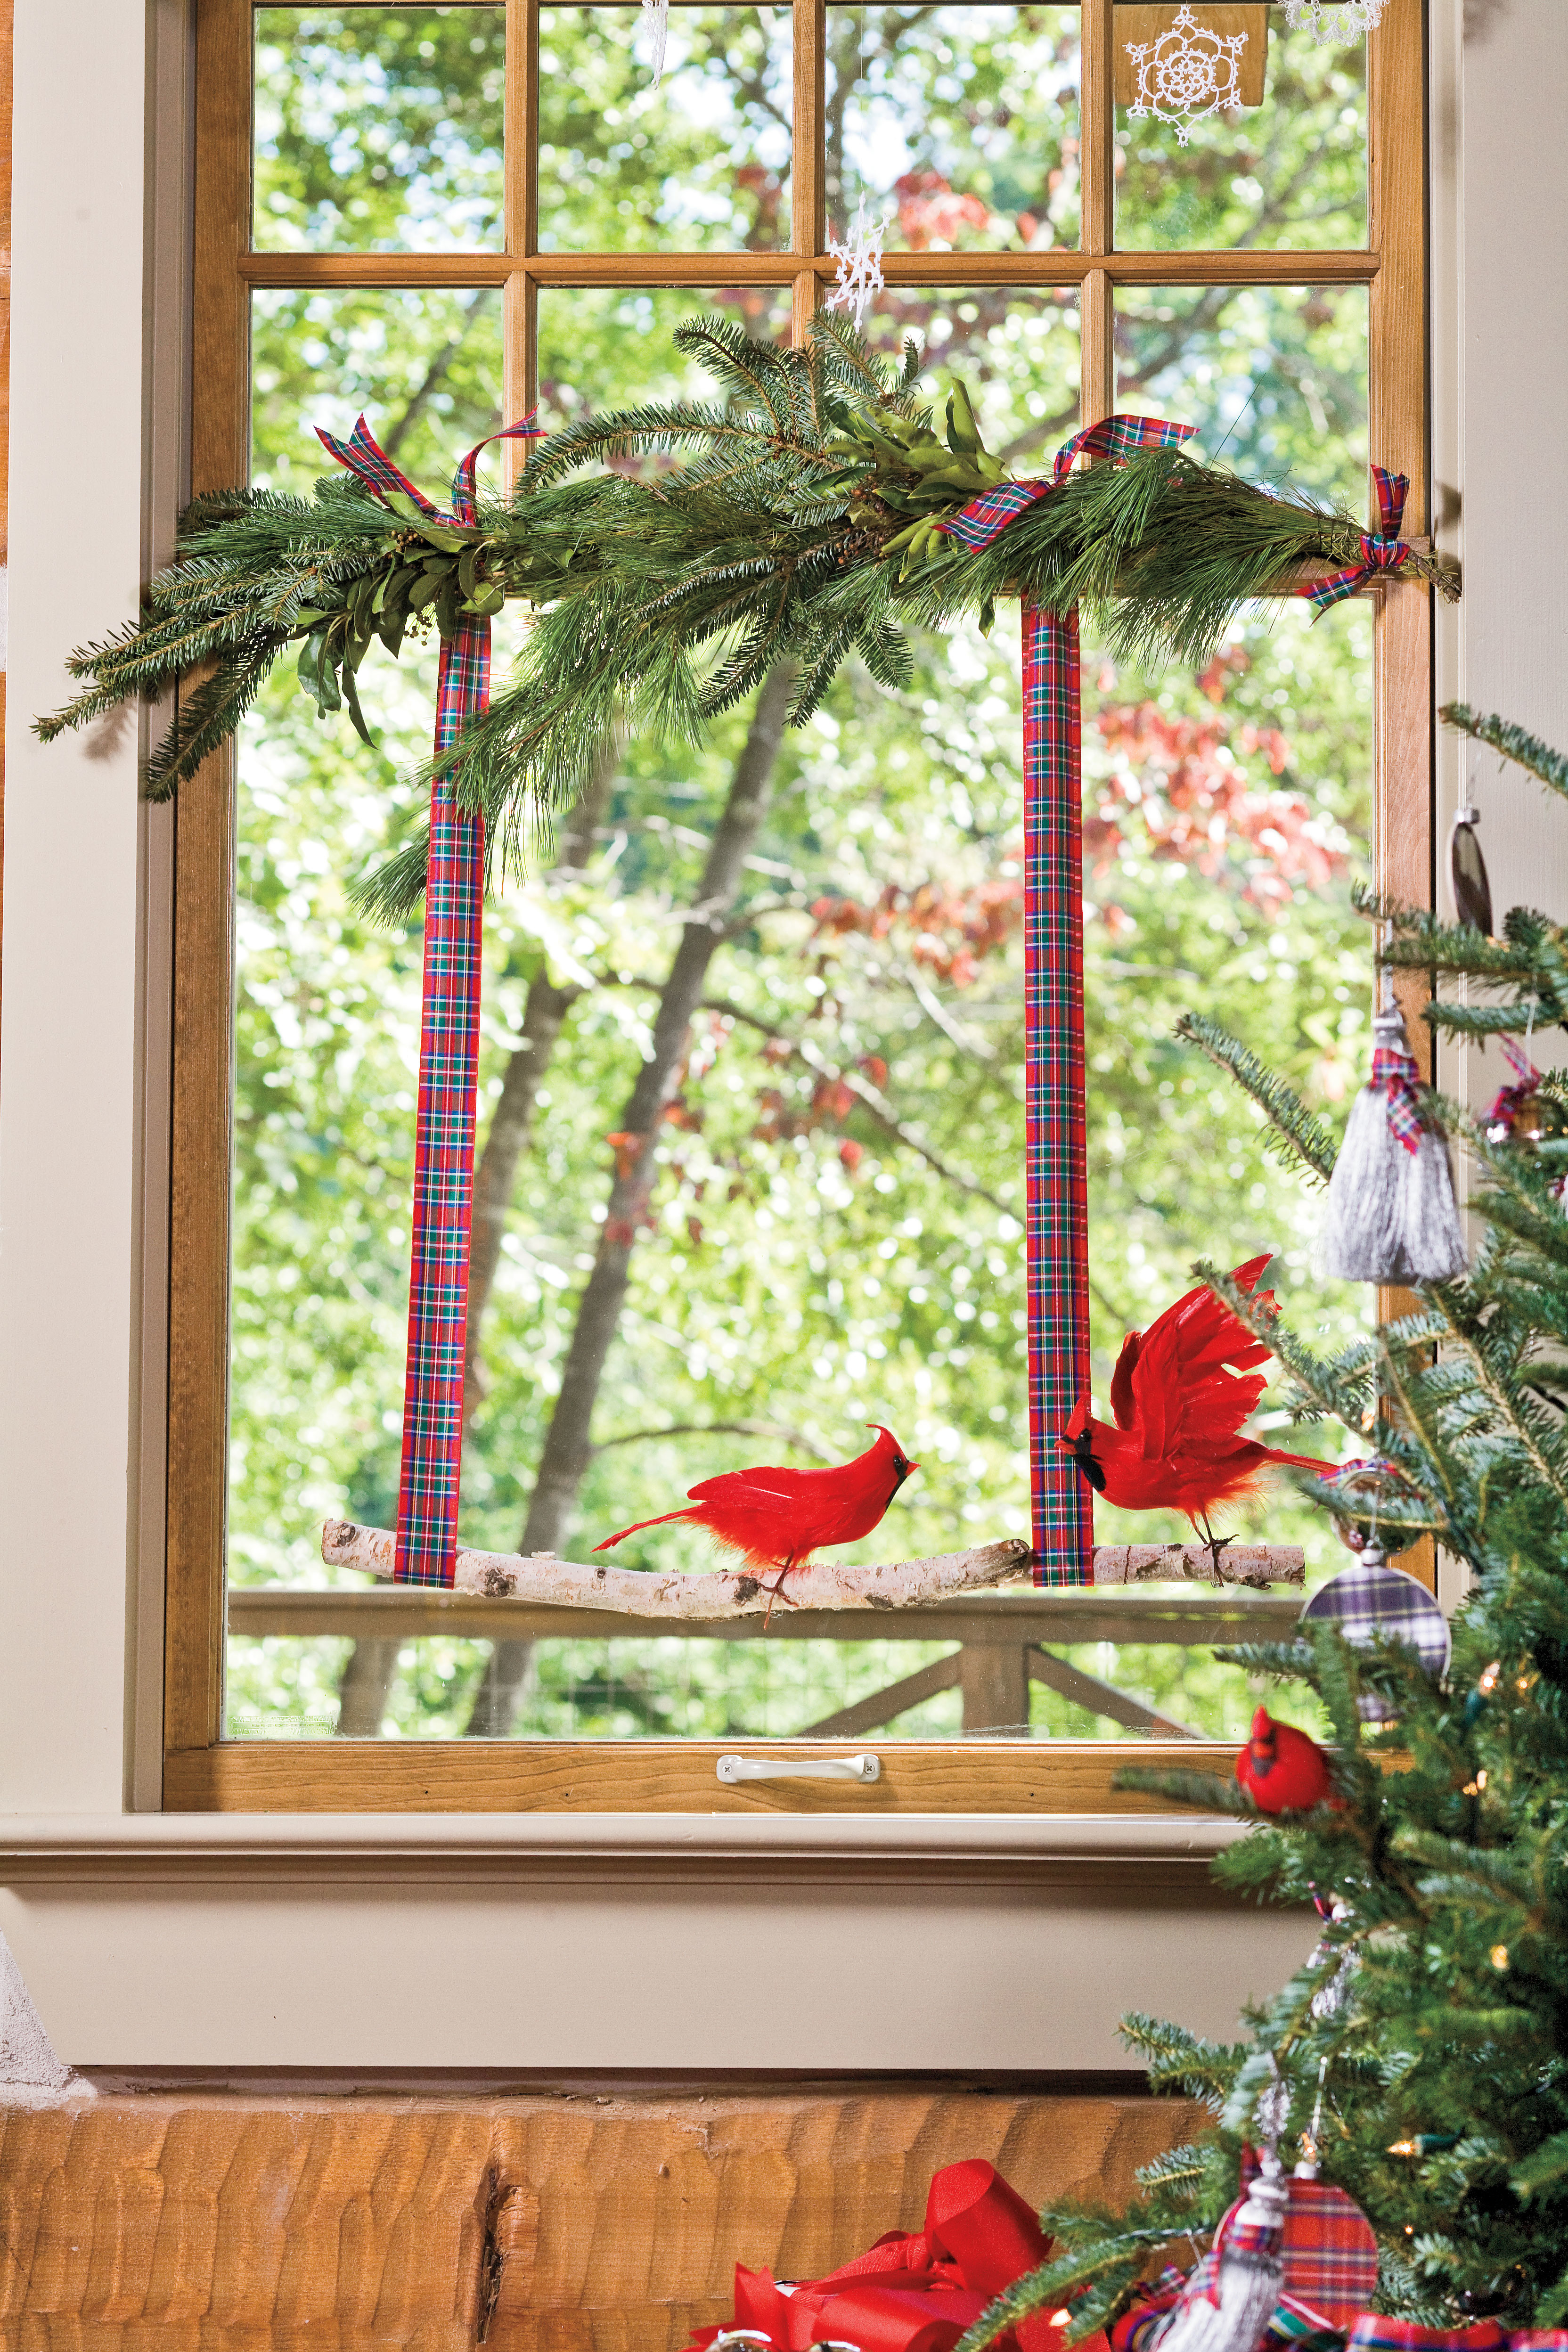 Cajun Kitchen Decor Hang Decorations In Windows 100 Fresh Christmas Decorating Ideas